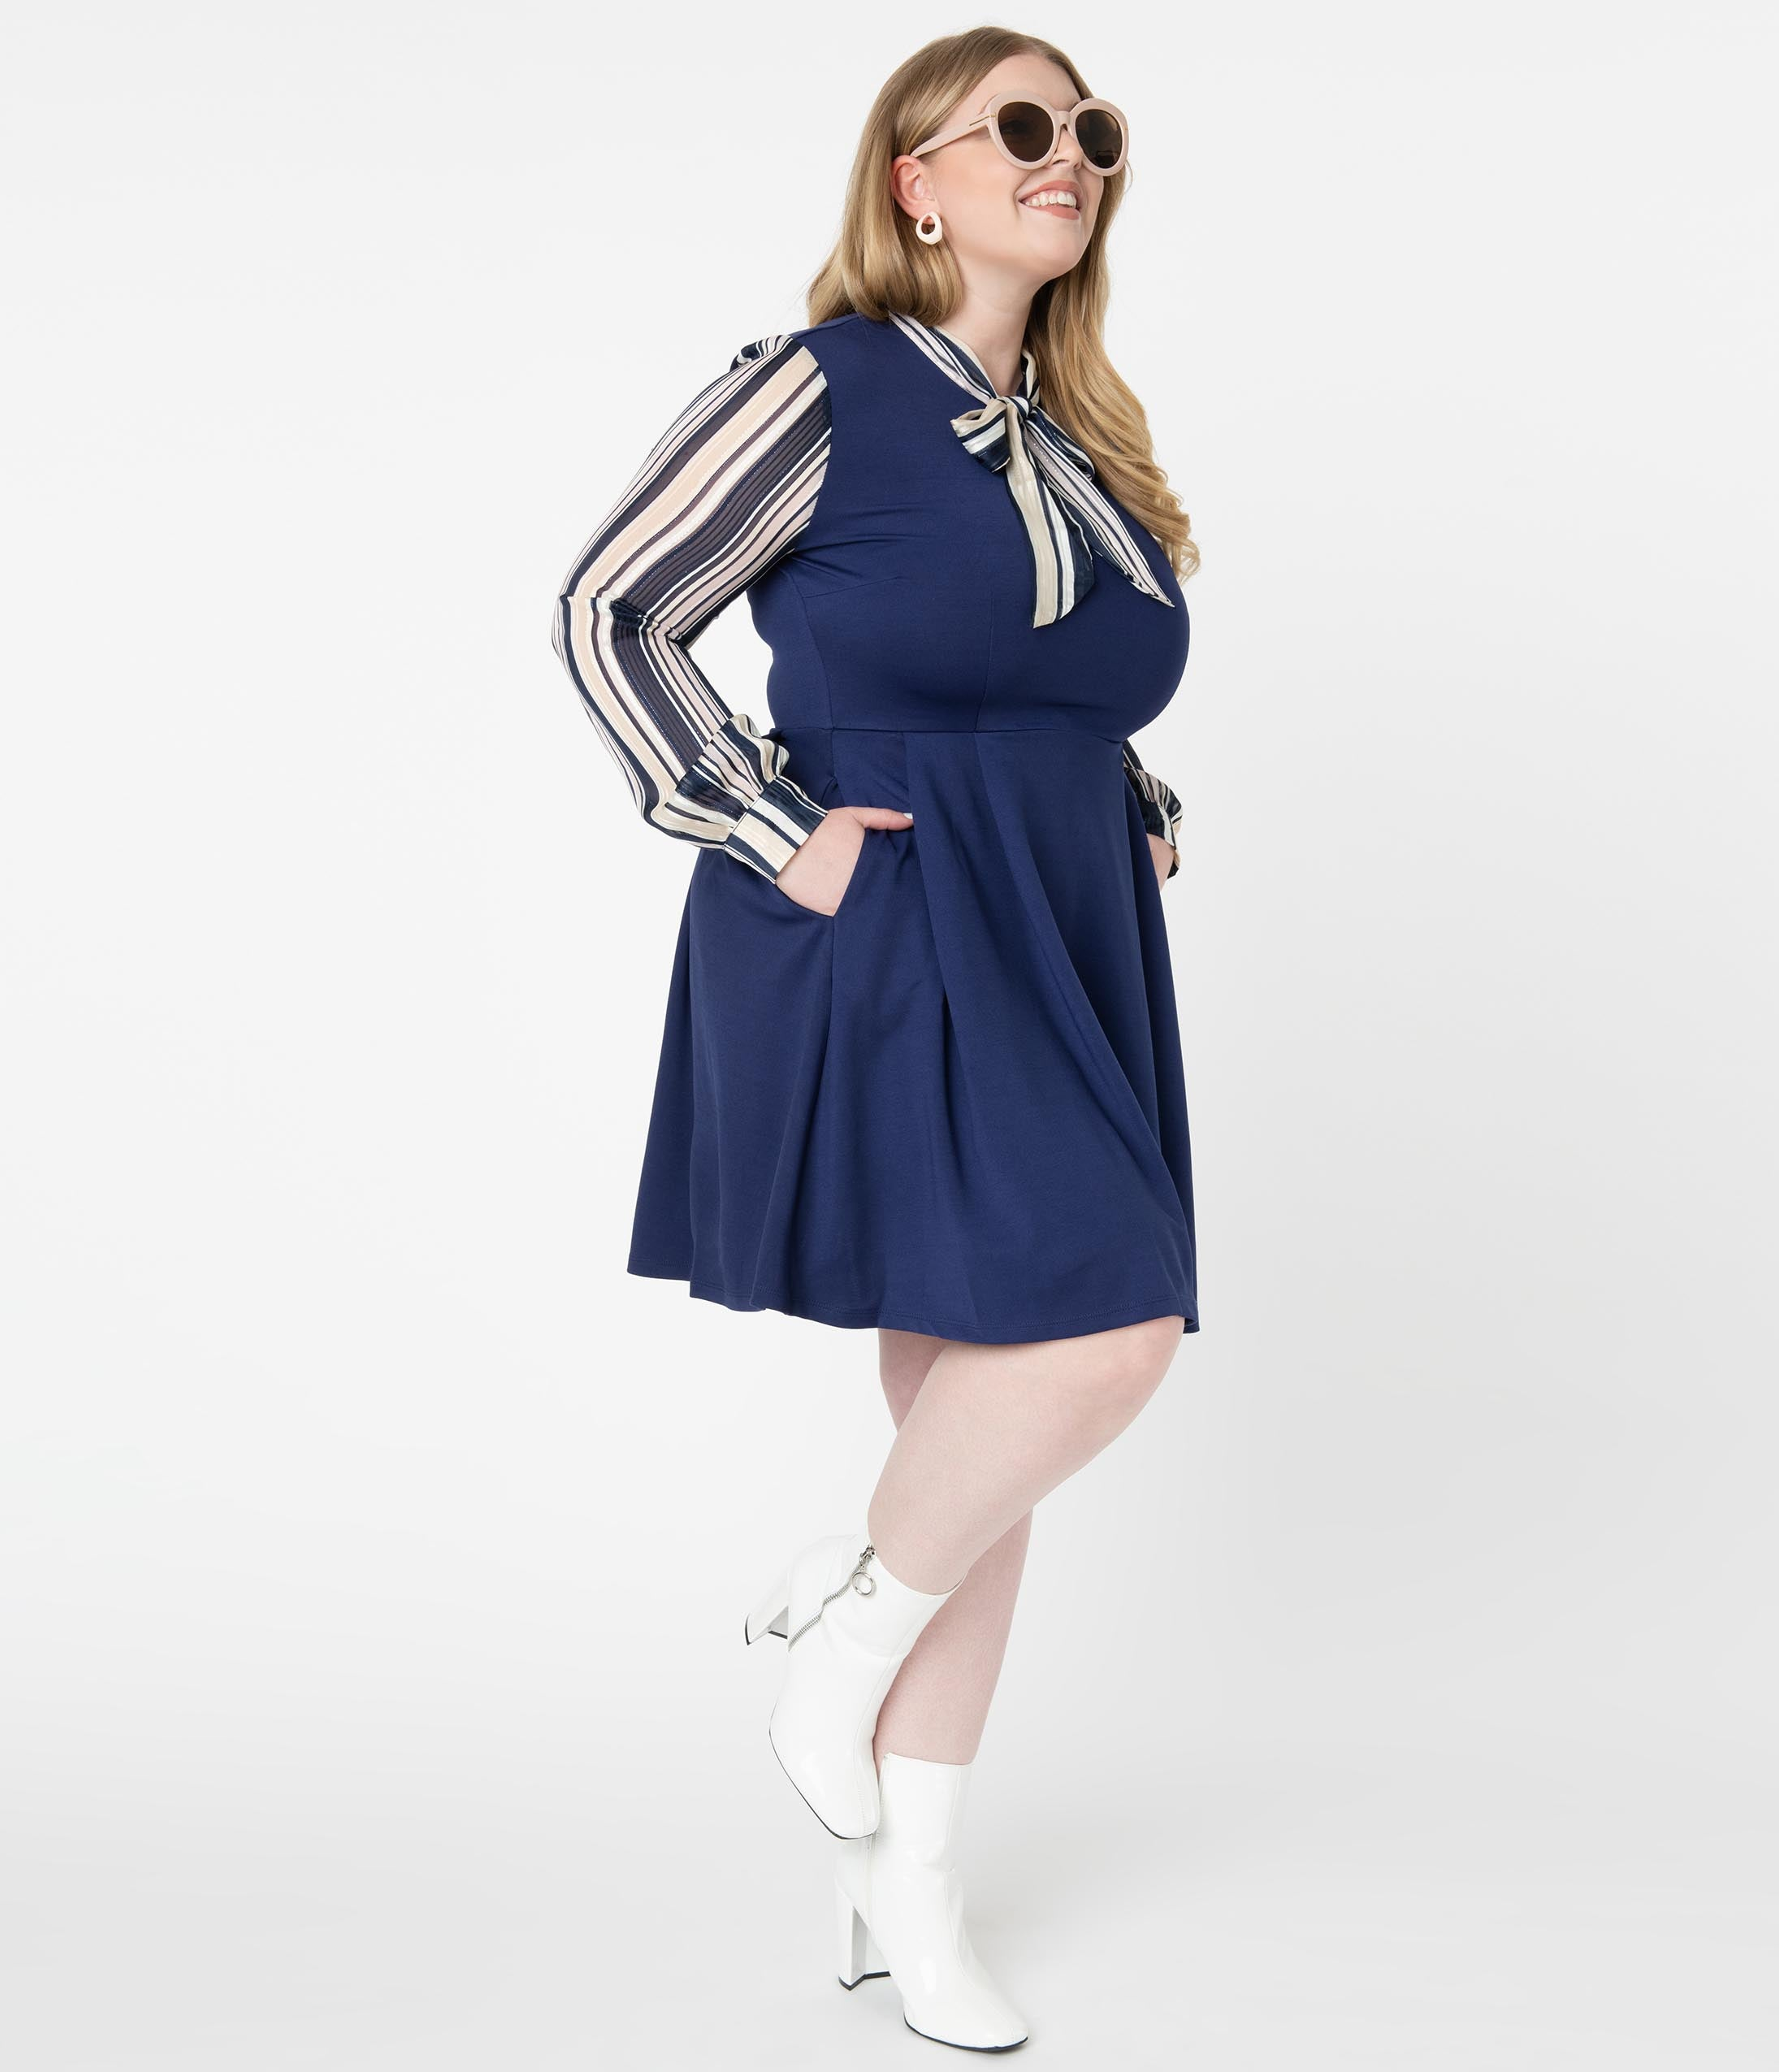 70s Dresses – Disco Dress, Hippie Dress, Wrap Dress Smak Parlour Plus Size Navy  Shimmer Stripe She.e.o. Fit  Flare Dress $78.00 AT vintagedancer.com